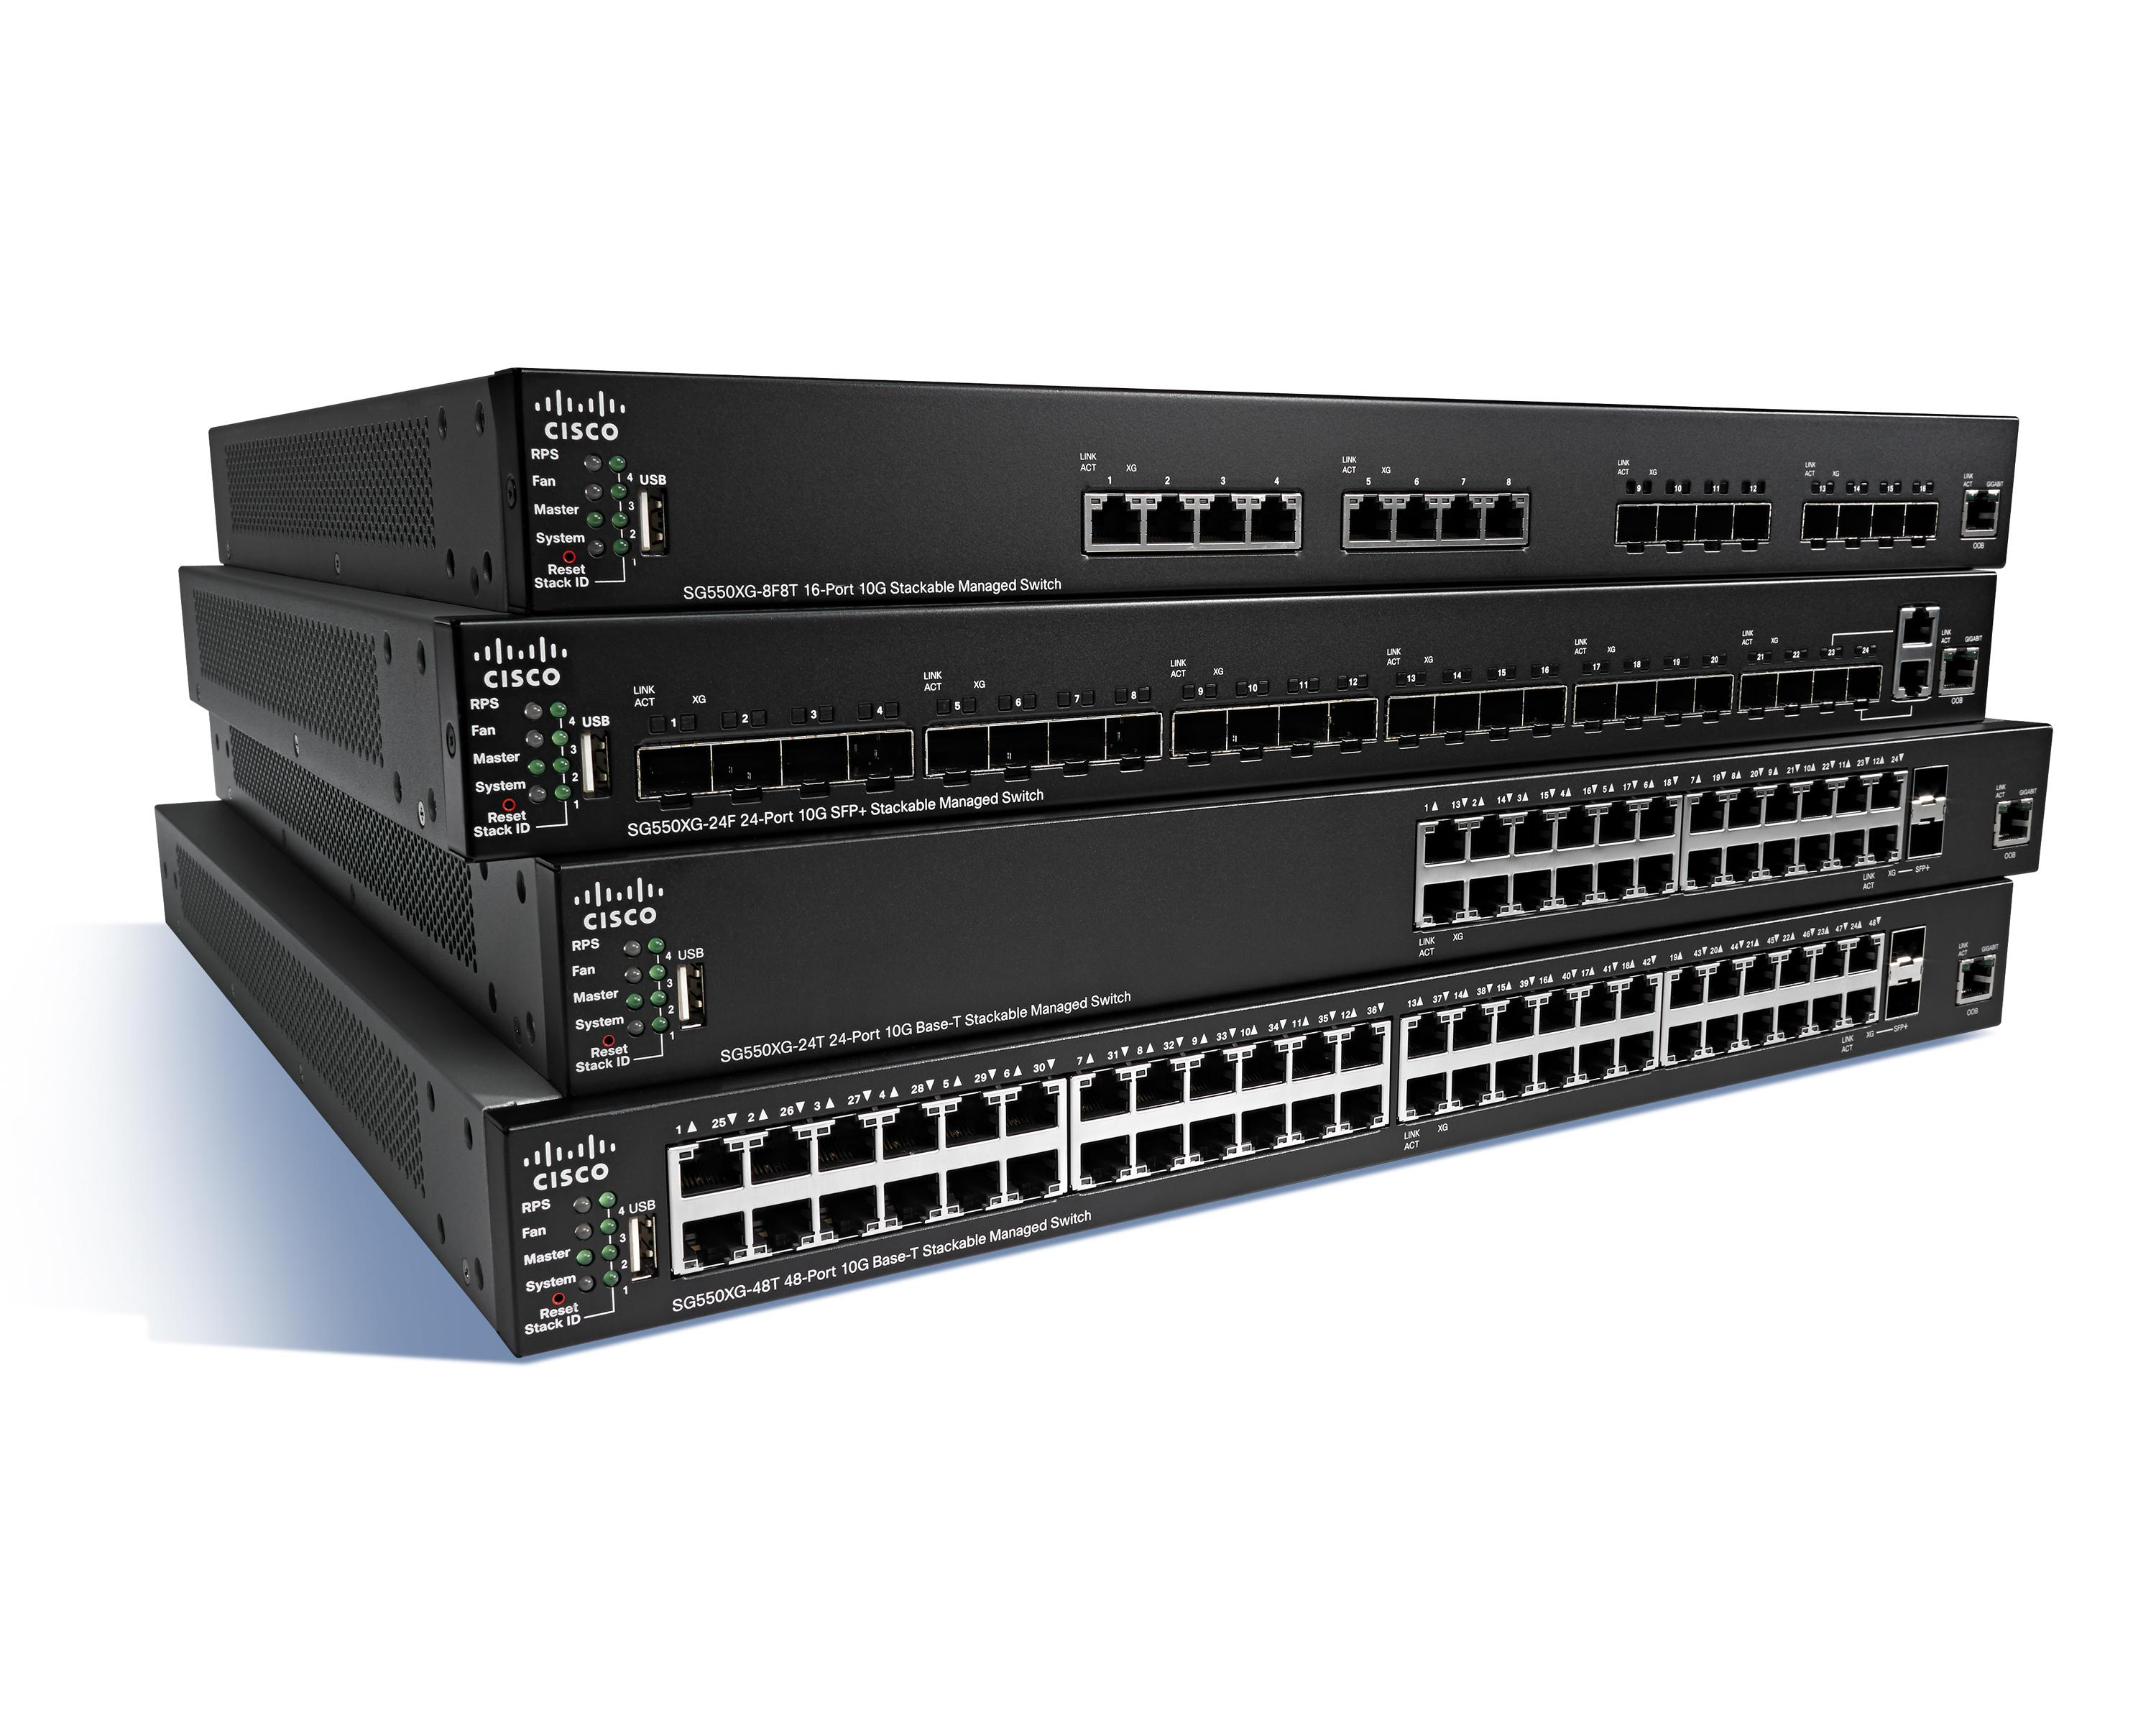 Cisco SG550XG-24F switch